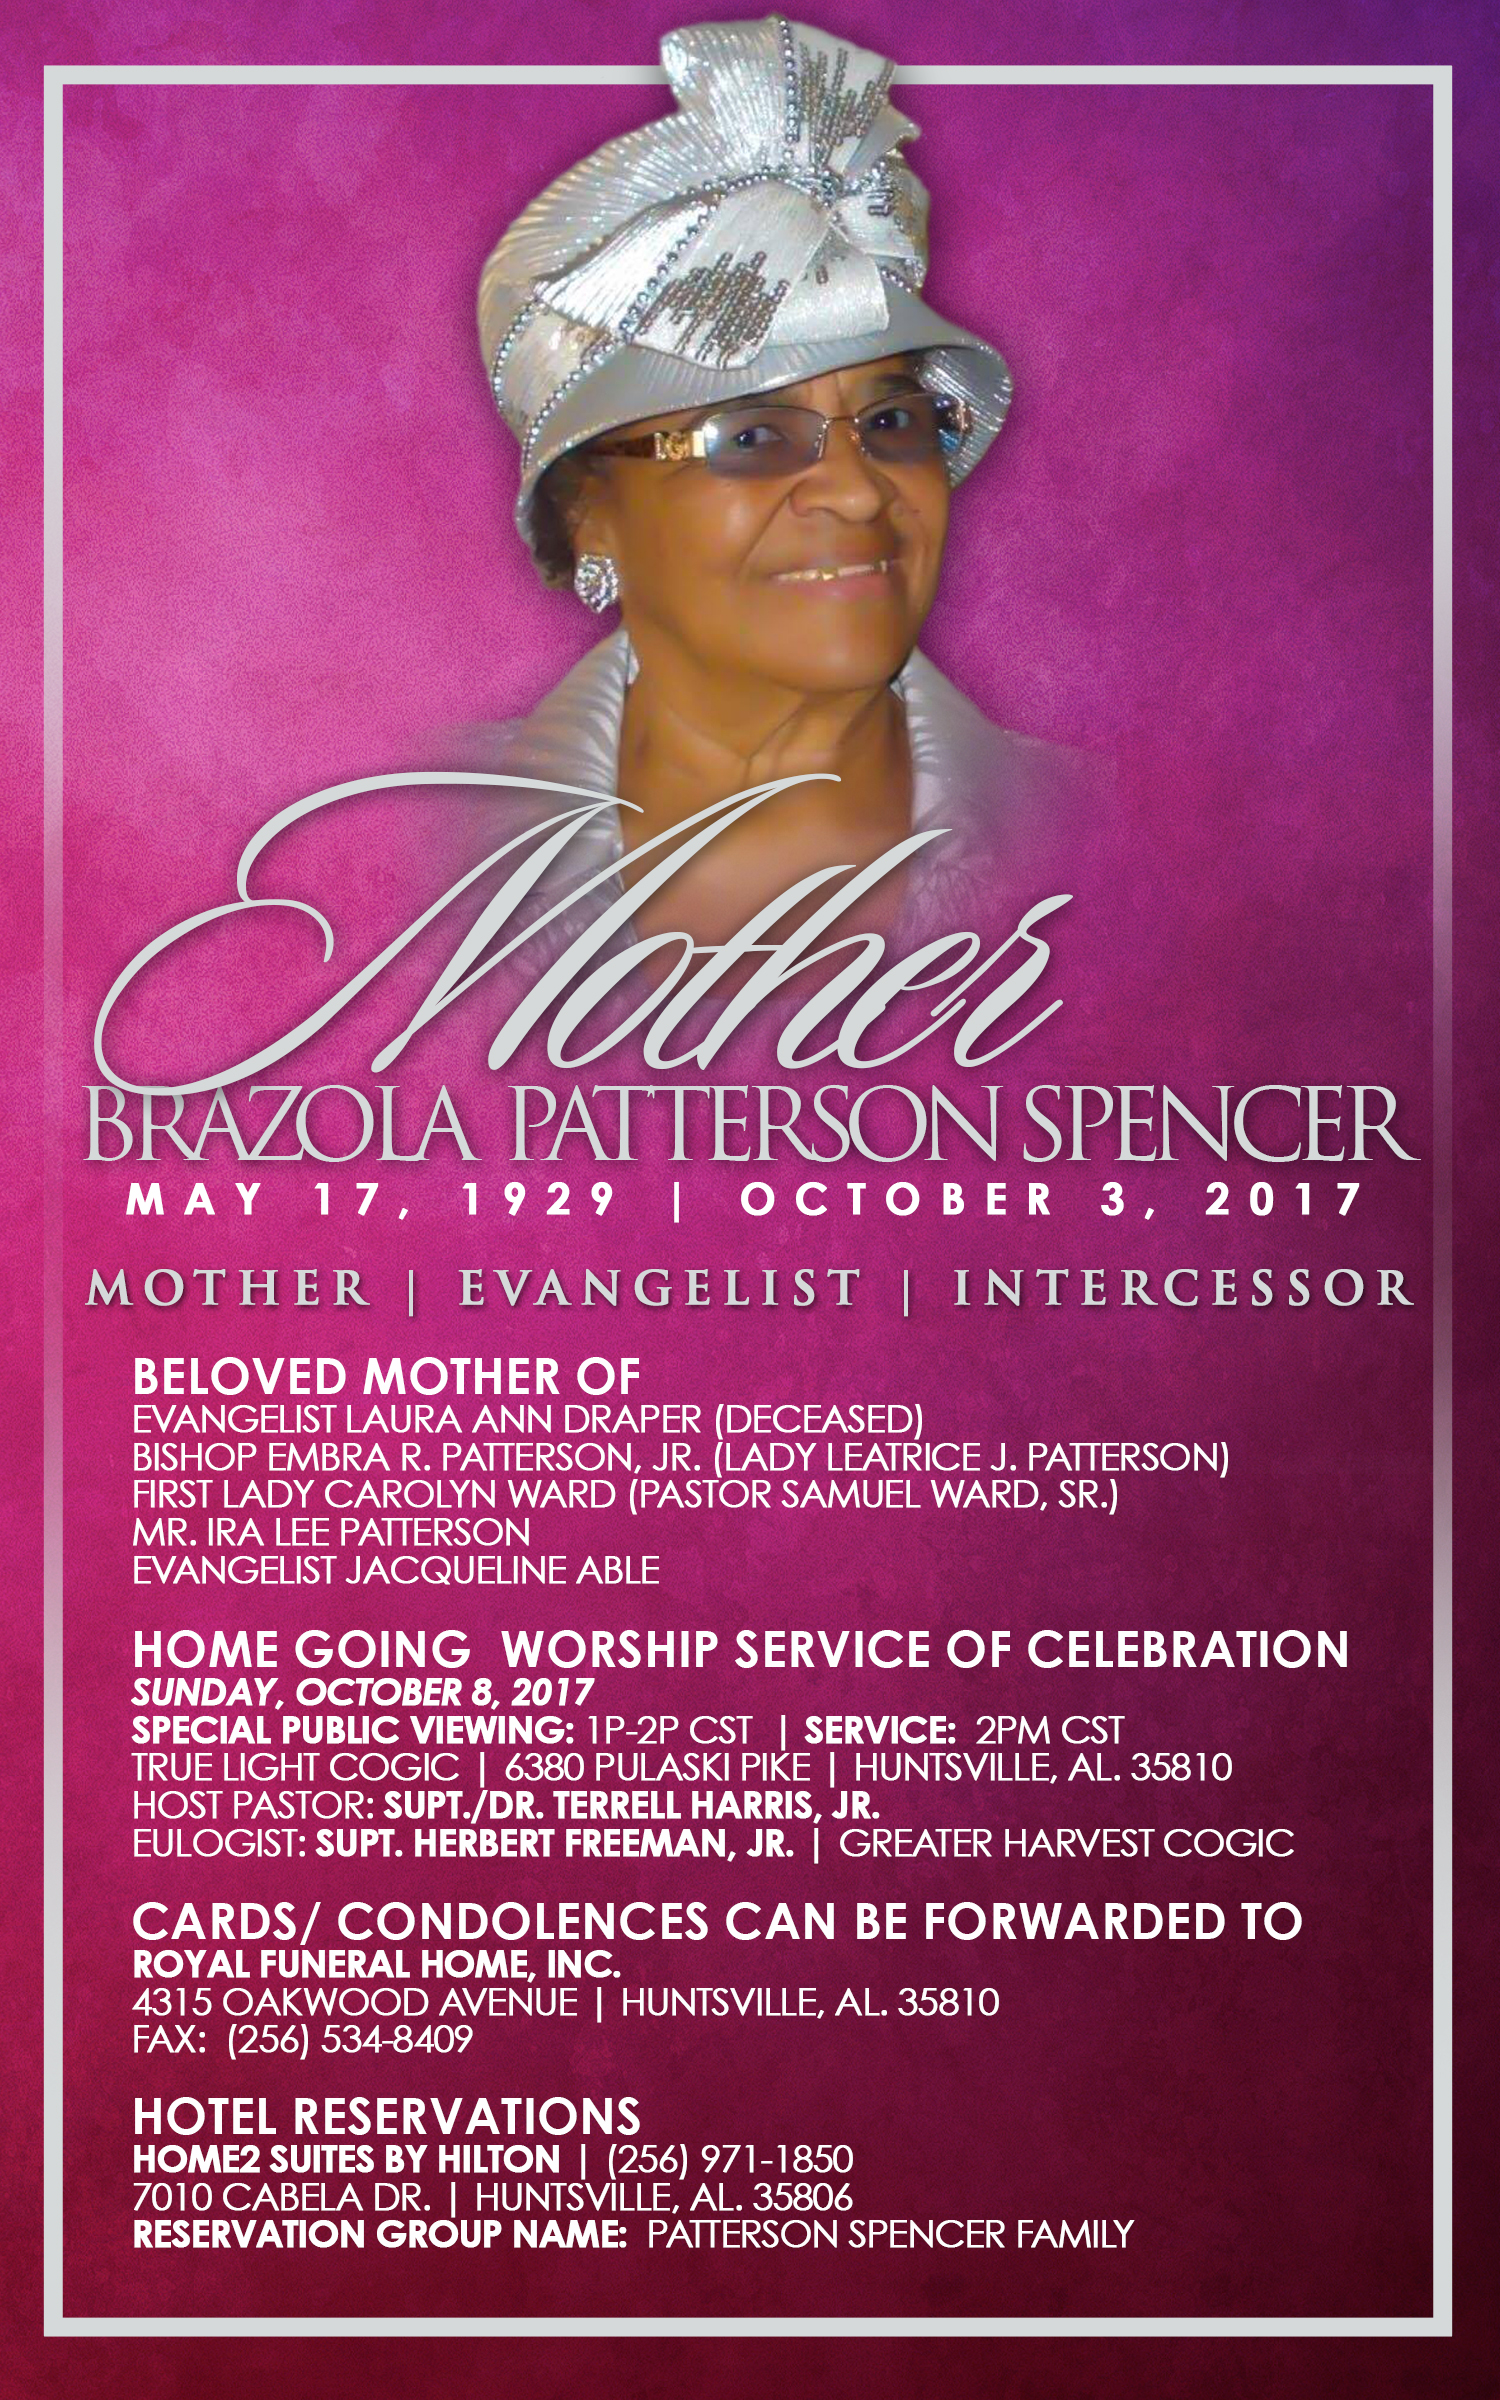 Notice of Transition Mother Brazola Patterson Spencer COGIC